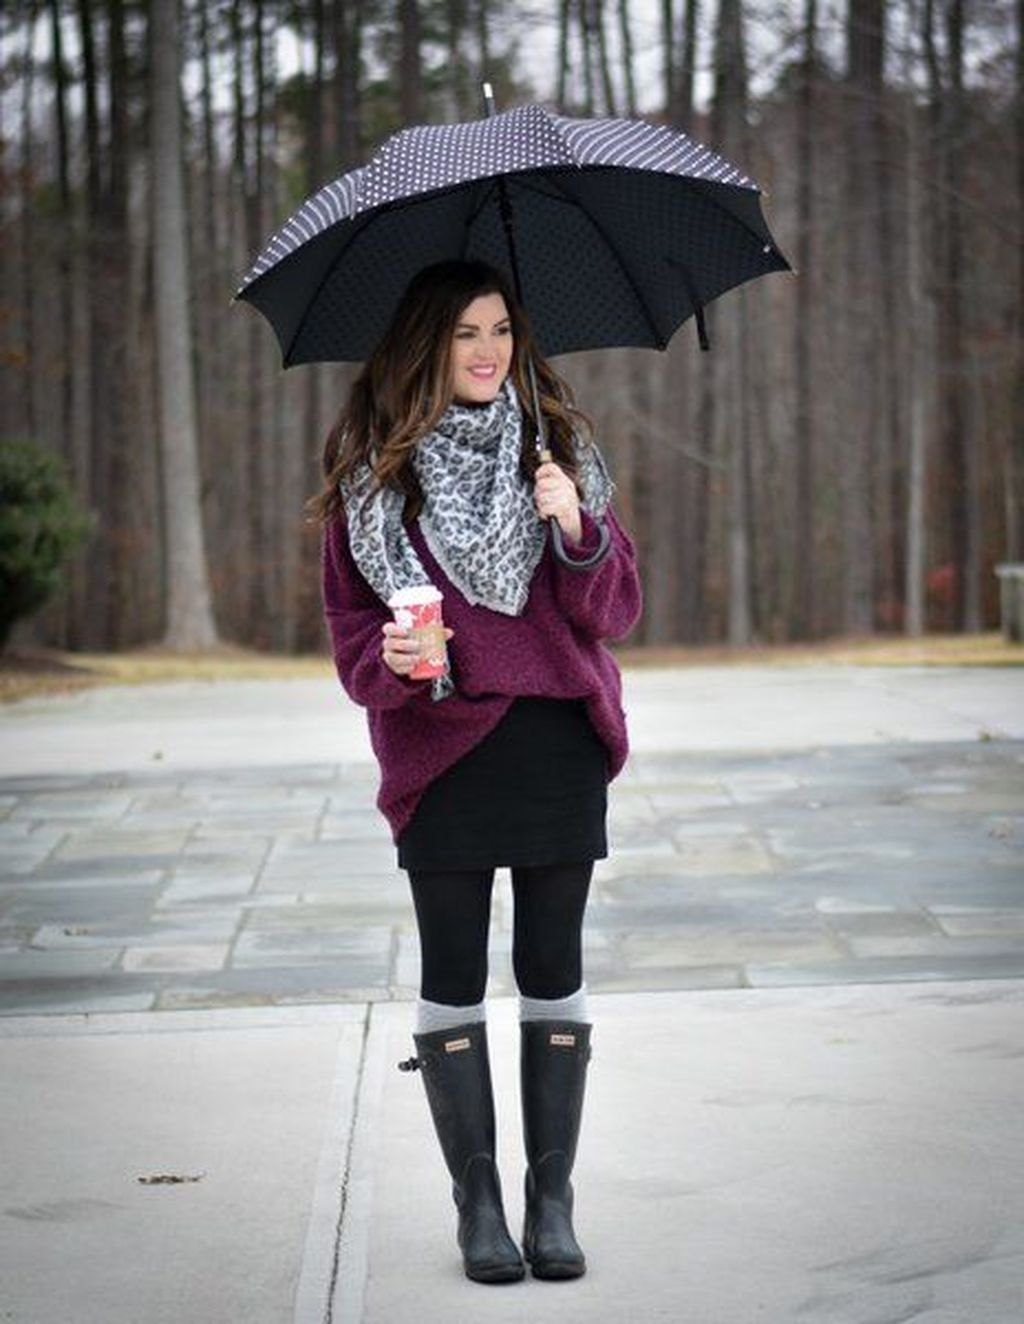 46 Stunning and Stylist Outfits Ideas To Wear On Rainy Day - TILEPENDANT #rainydayoutfitforwork